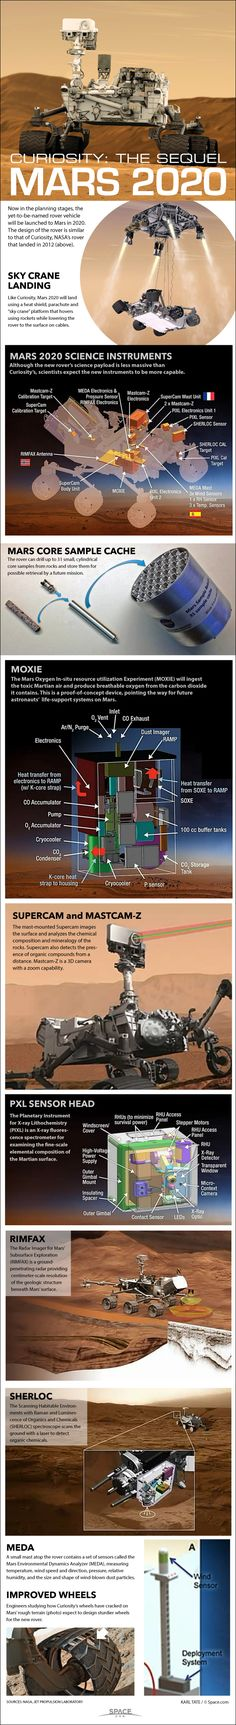 NASA's Mars 2020 mission will send a car-size rover to the Red Planet to collect samples. See how the Mars 2020 rover will work in this Space.com infographic.